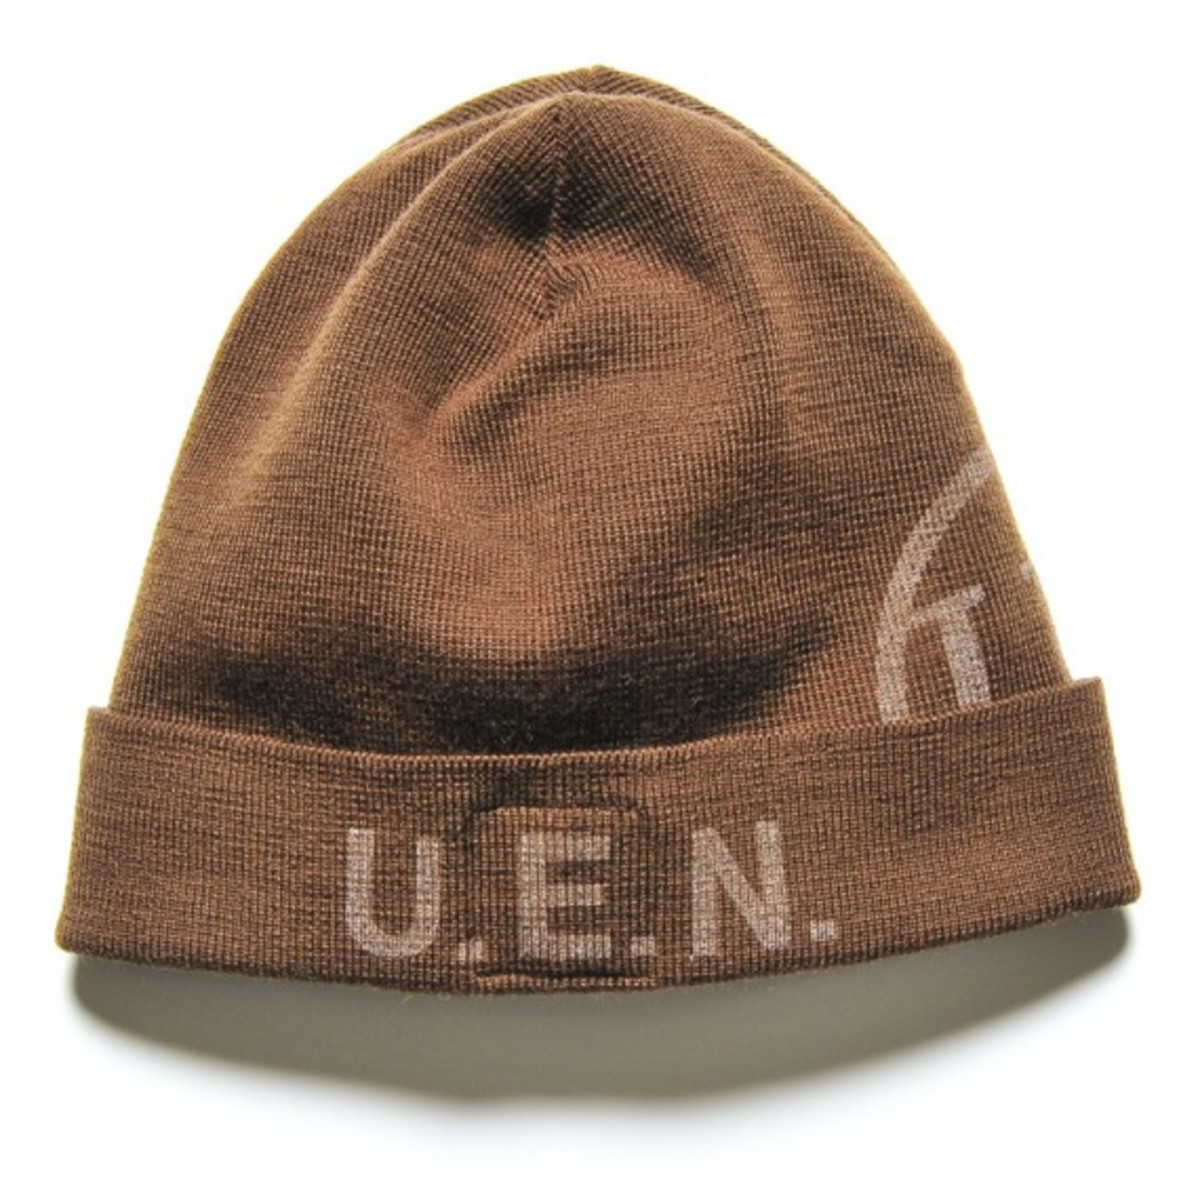 uniform-experiment-carhartt-knit-cap-02